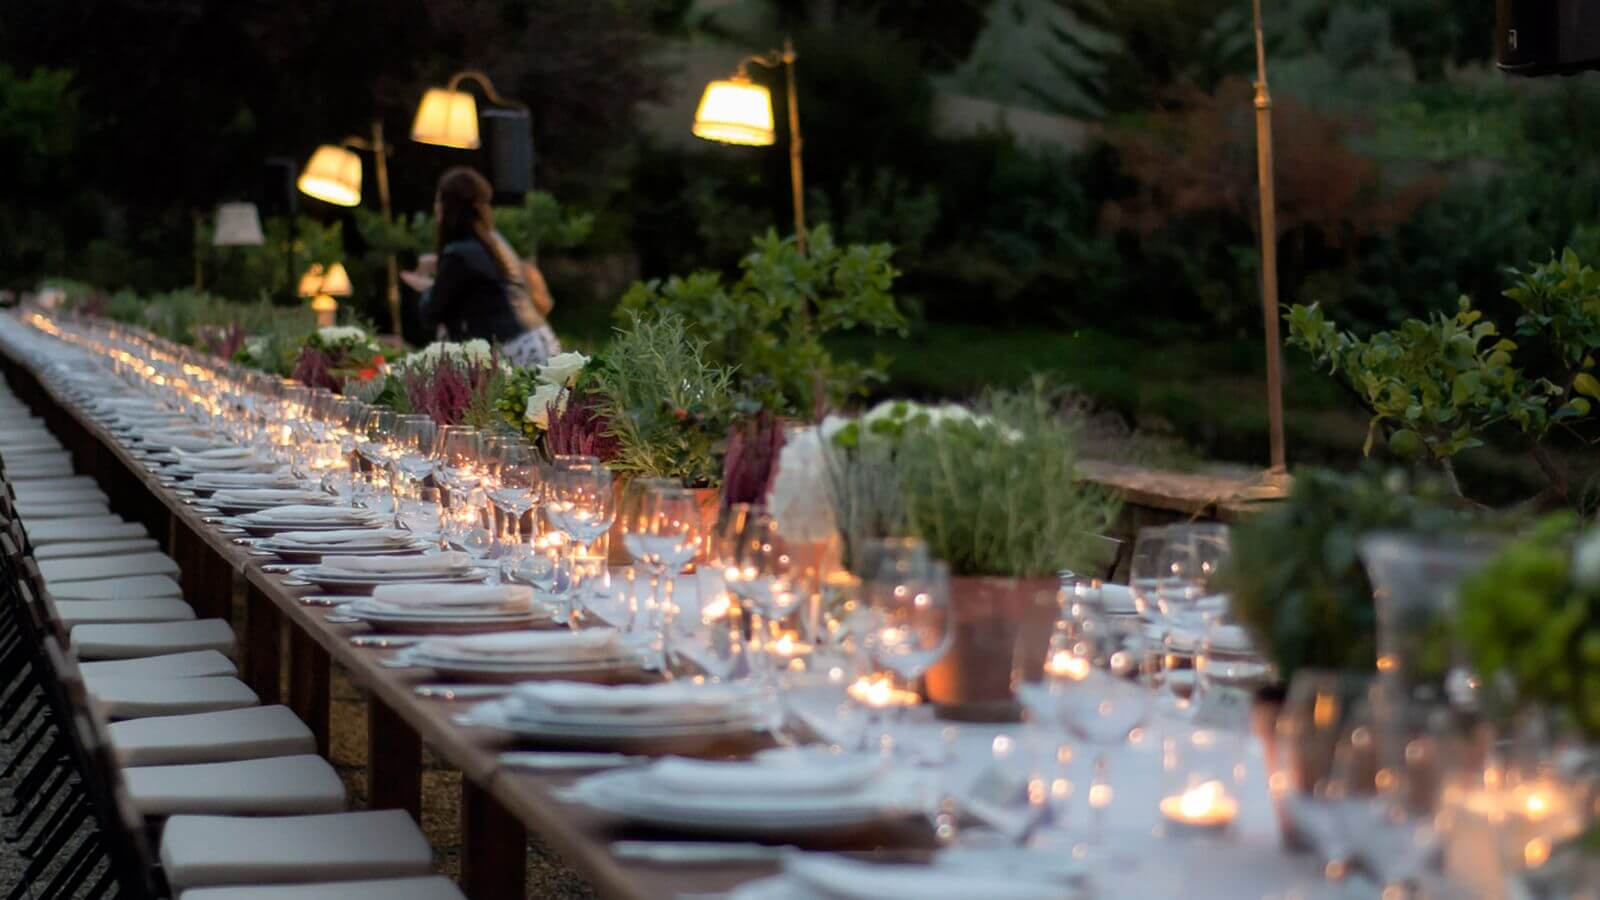 The Curated Life - Outdoor Wedding Reception givy small.jpg